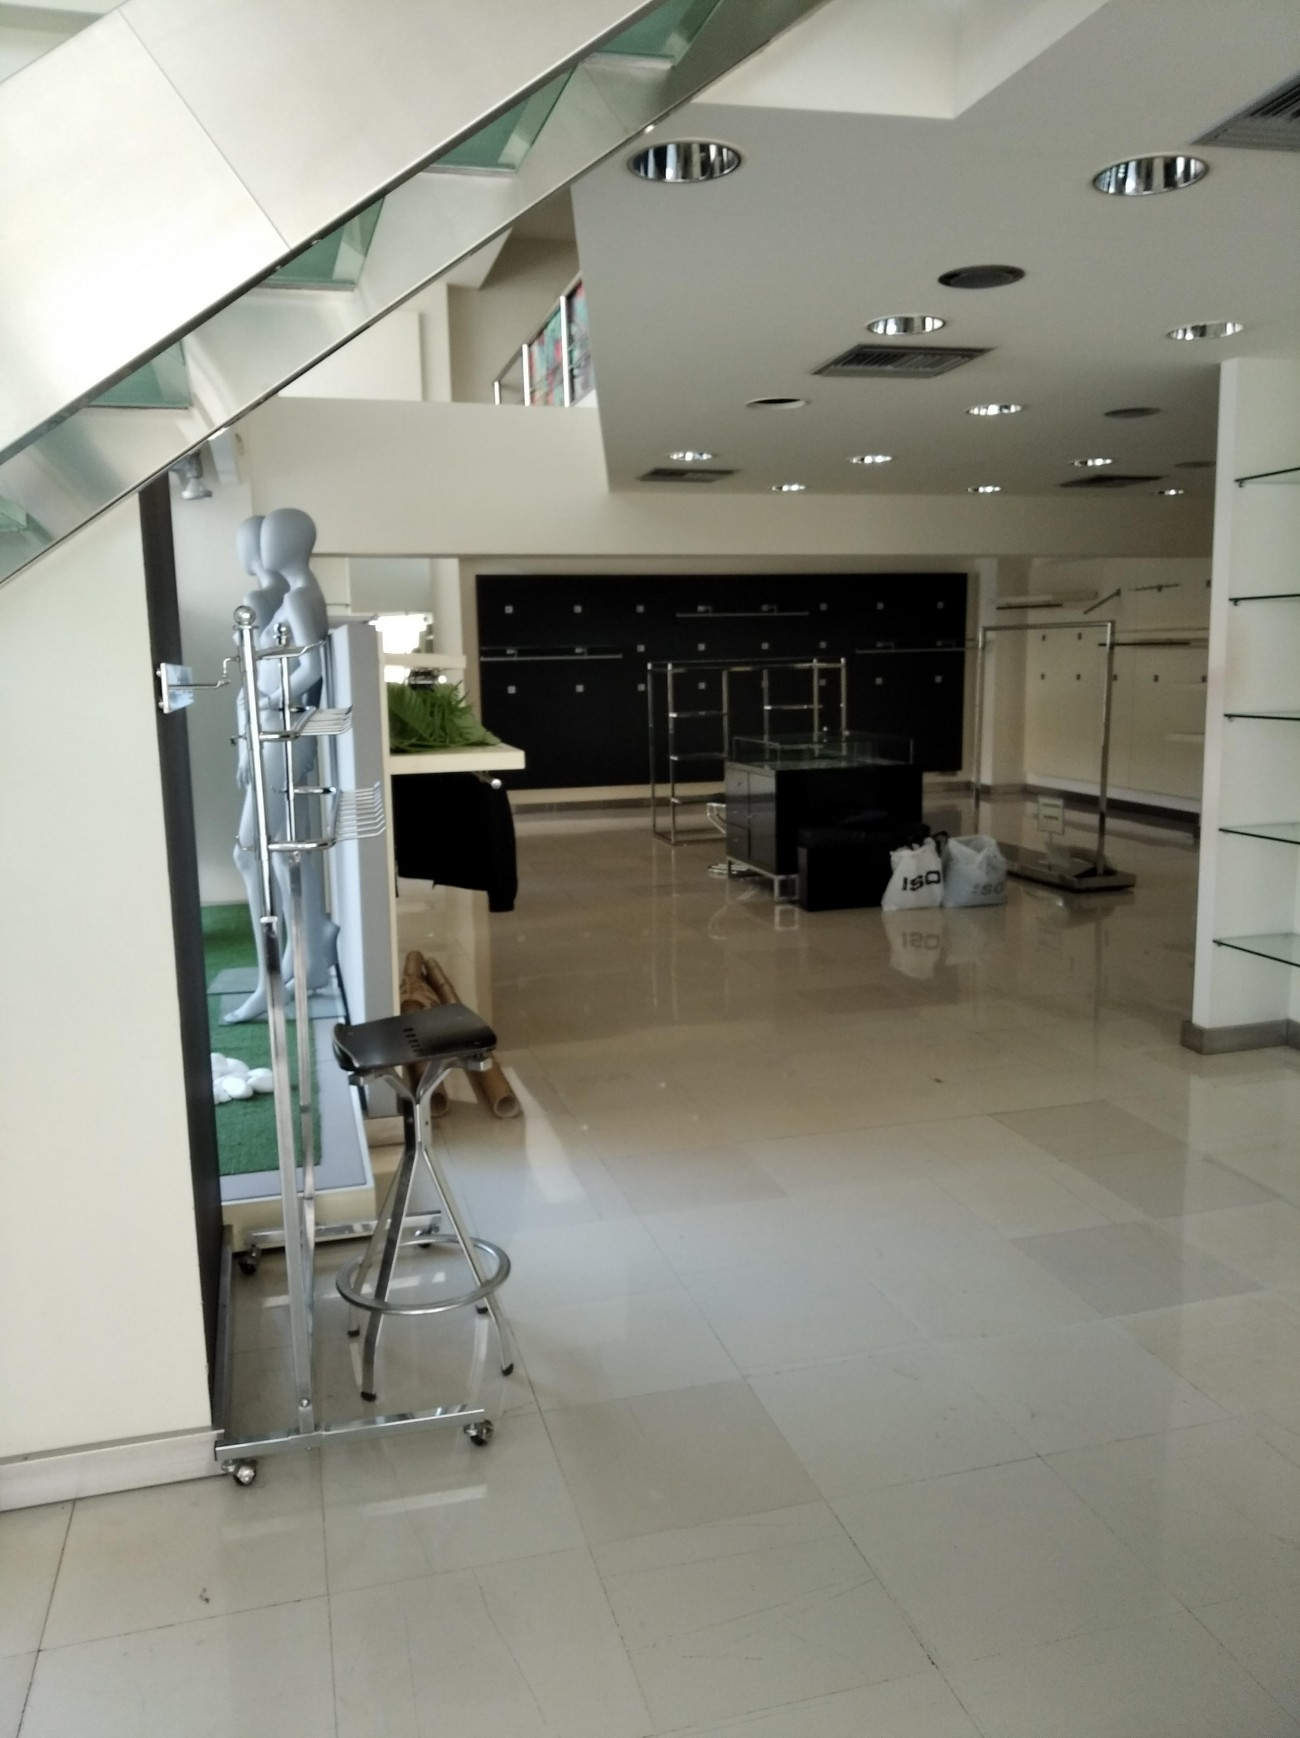 Shop for Rent in Ilioupoli, Central & South Region of Athens, Greece